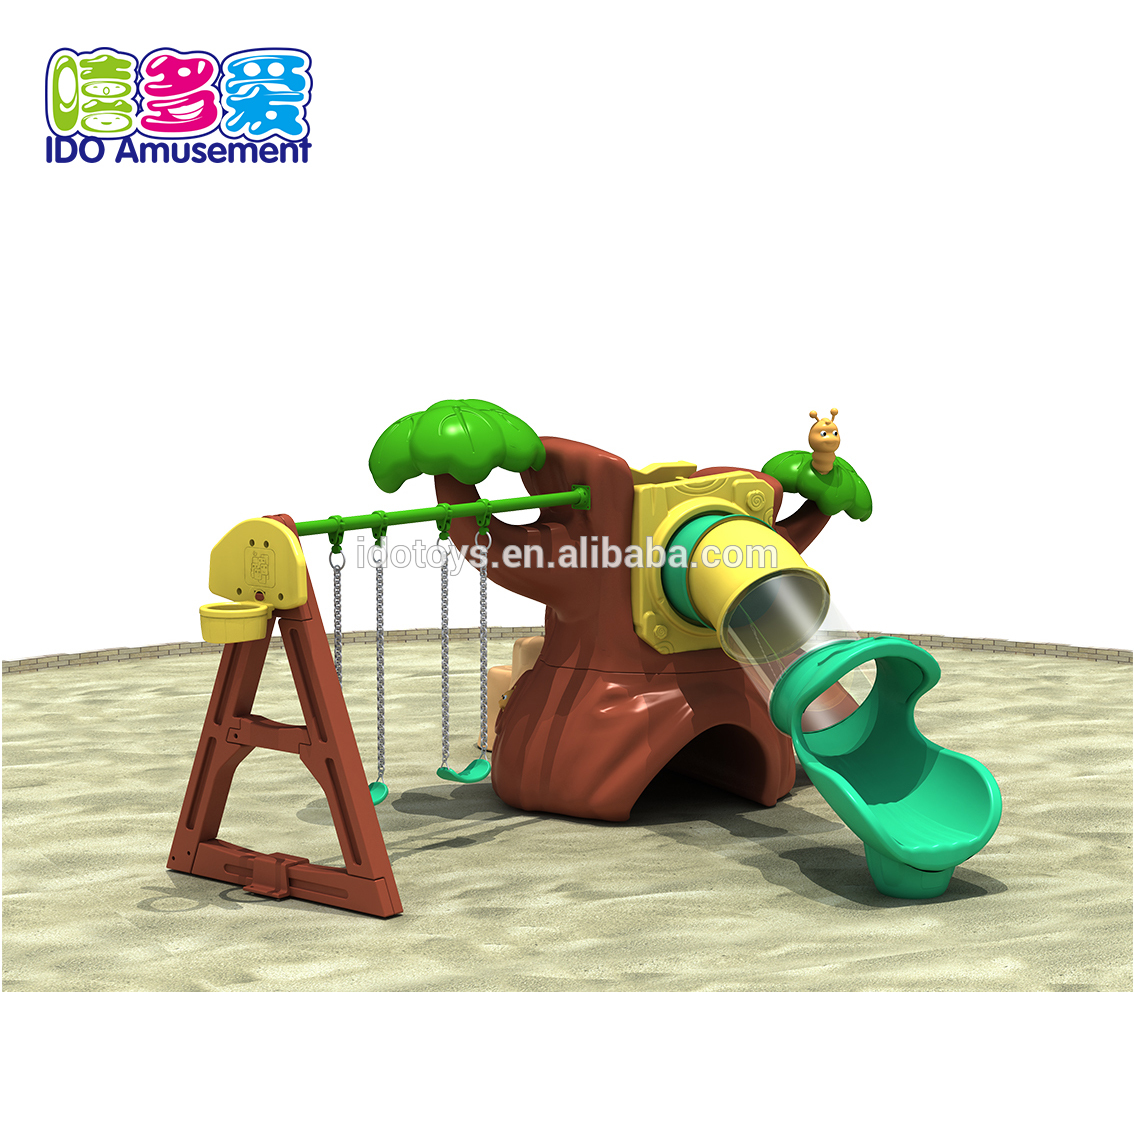 High Quality Wooden Playground Equipment Outdoor – Plastic Playground Slides,Mini Plastic Playground Slide Set – IDO Amusement